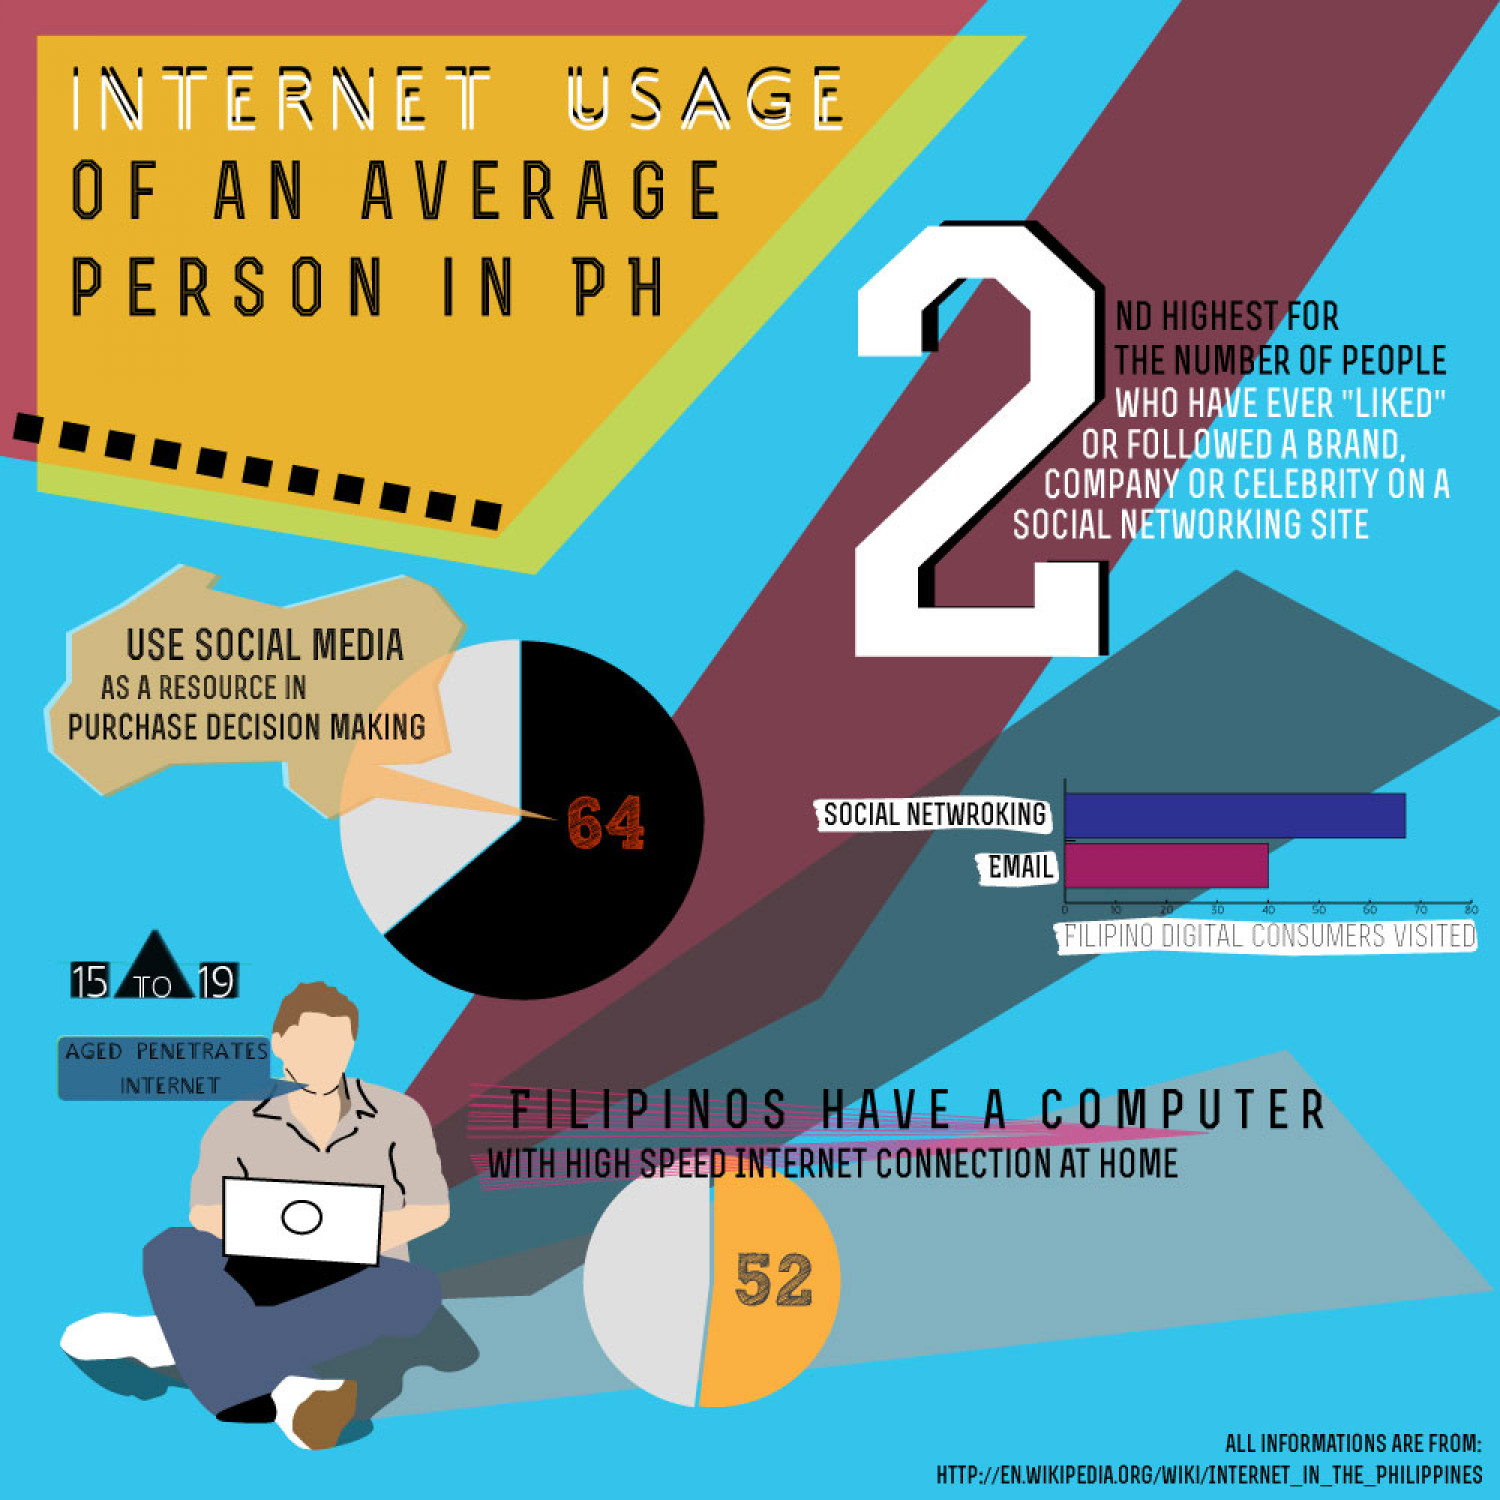 Internet usage in the Philippines Infographic